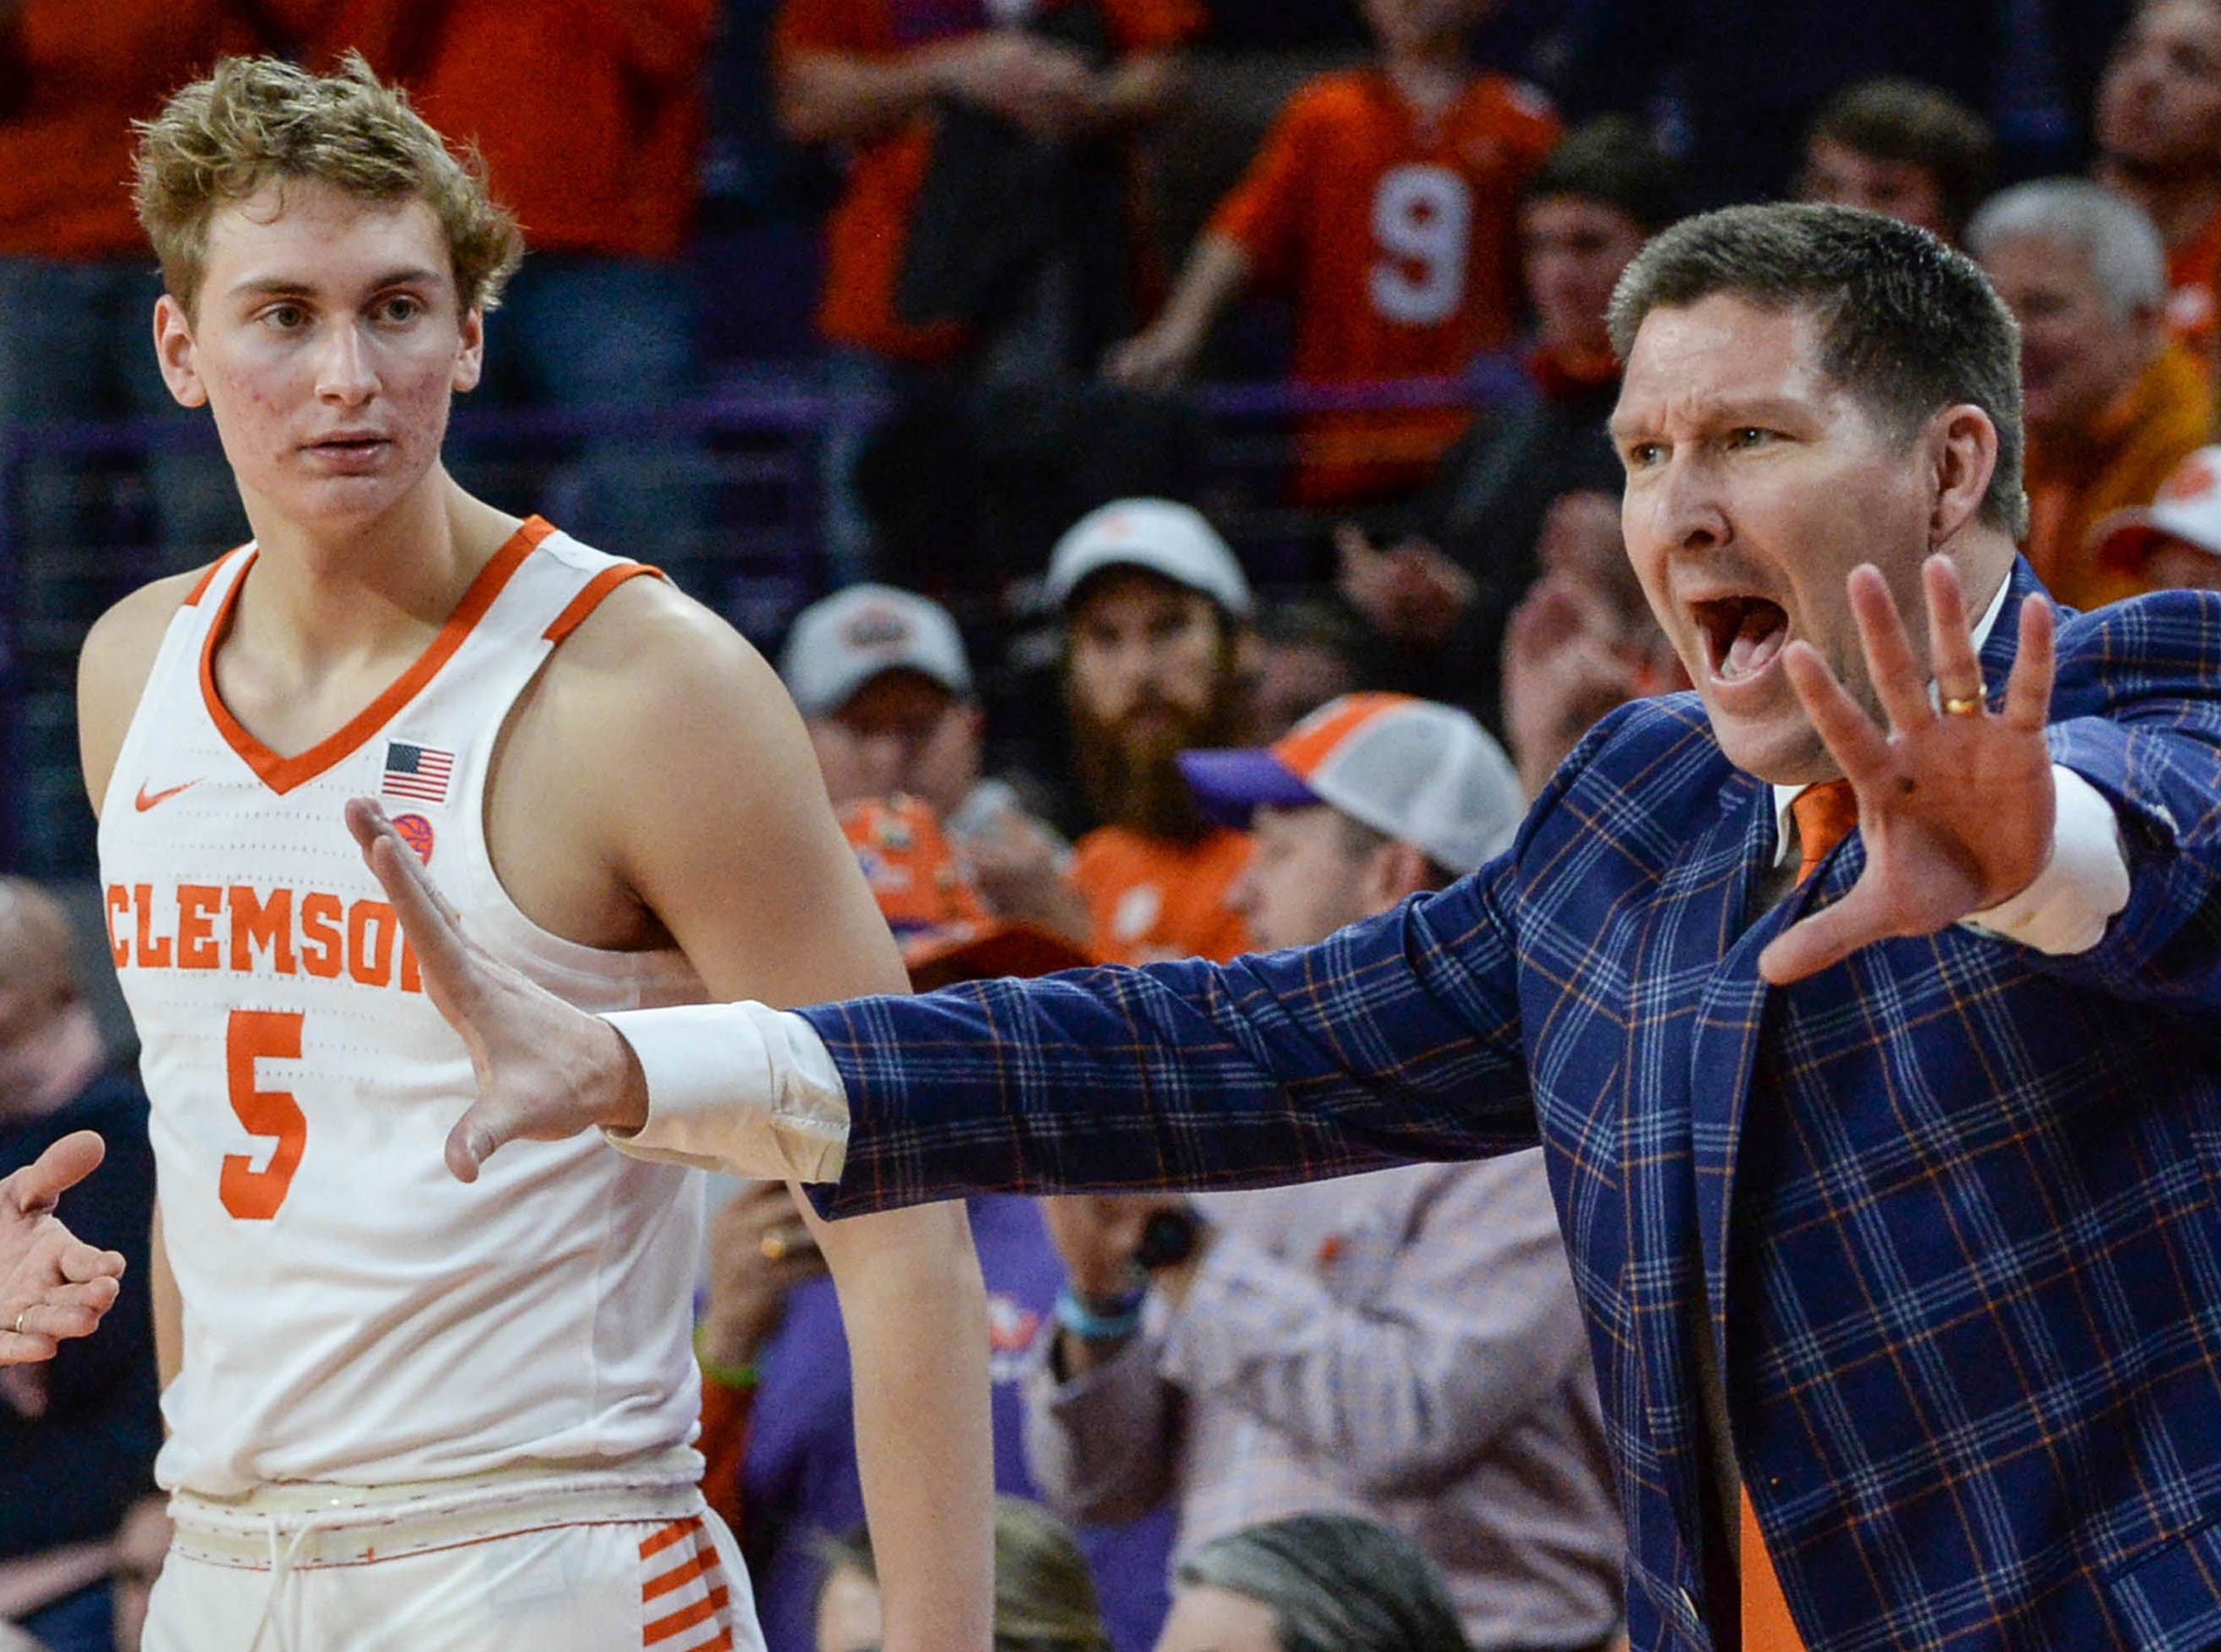 Clemson head coach Brad Brownell communicates with his team playing Syracuse during the second half in Littlejohn Coliseum in Clemson Saturday, March 9, 2019.